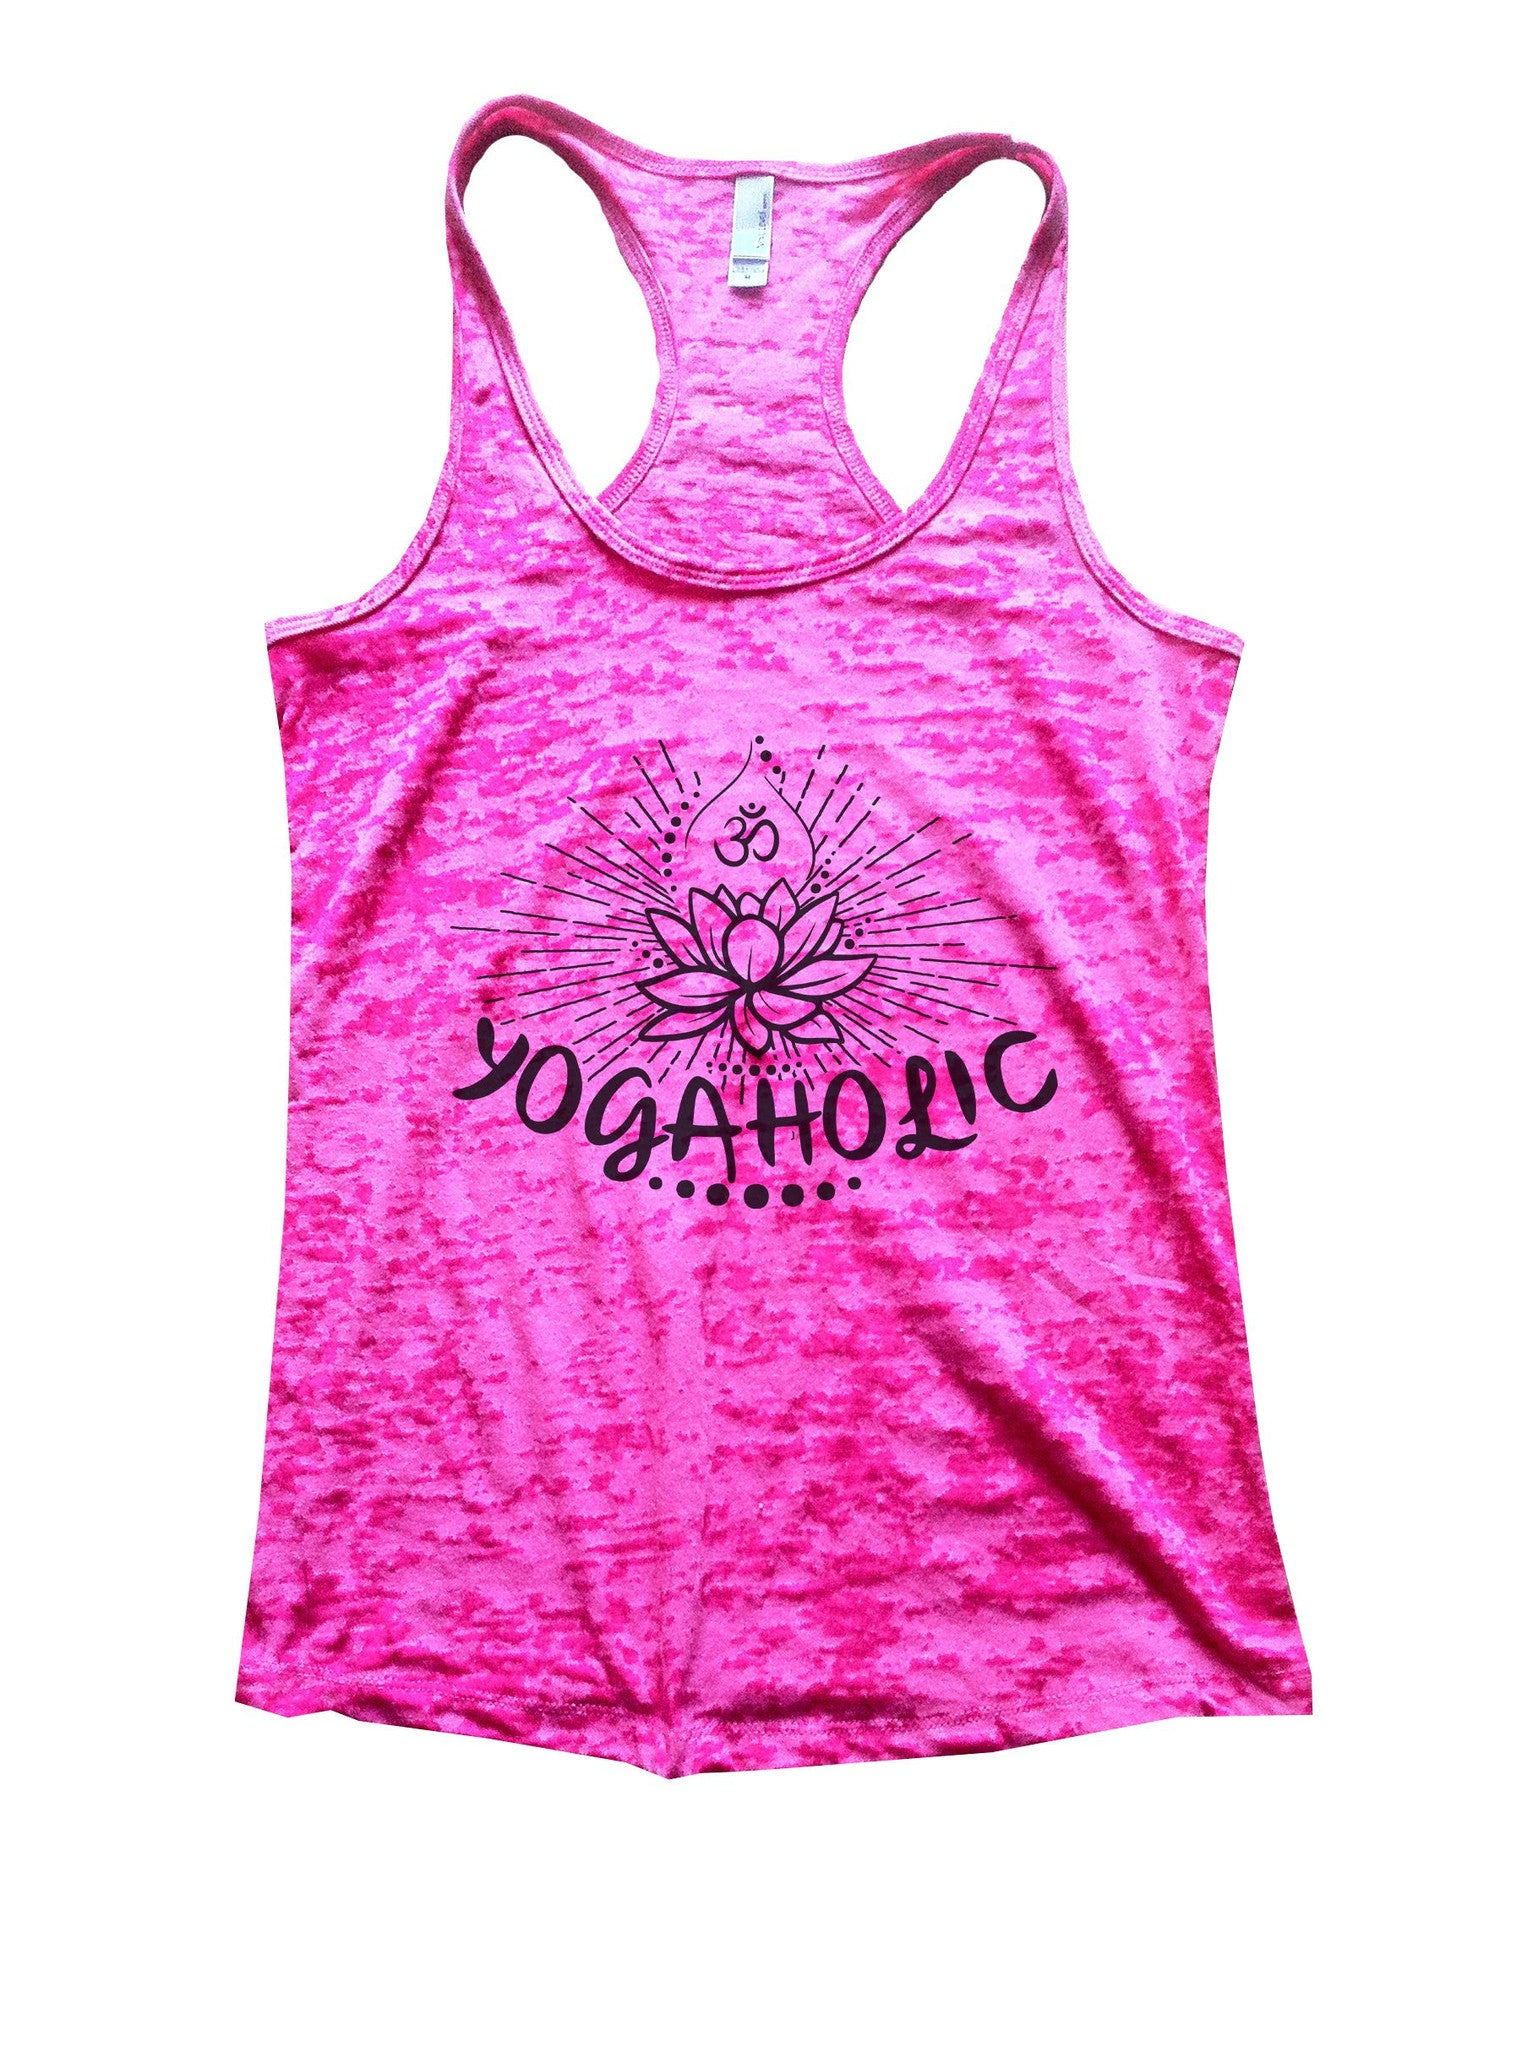 Yogaholic Burnout Tank Top By BurnoutTankTops.com - 1017 - Funny Shirts Tank Tops Burnouts and Triblends  - 5